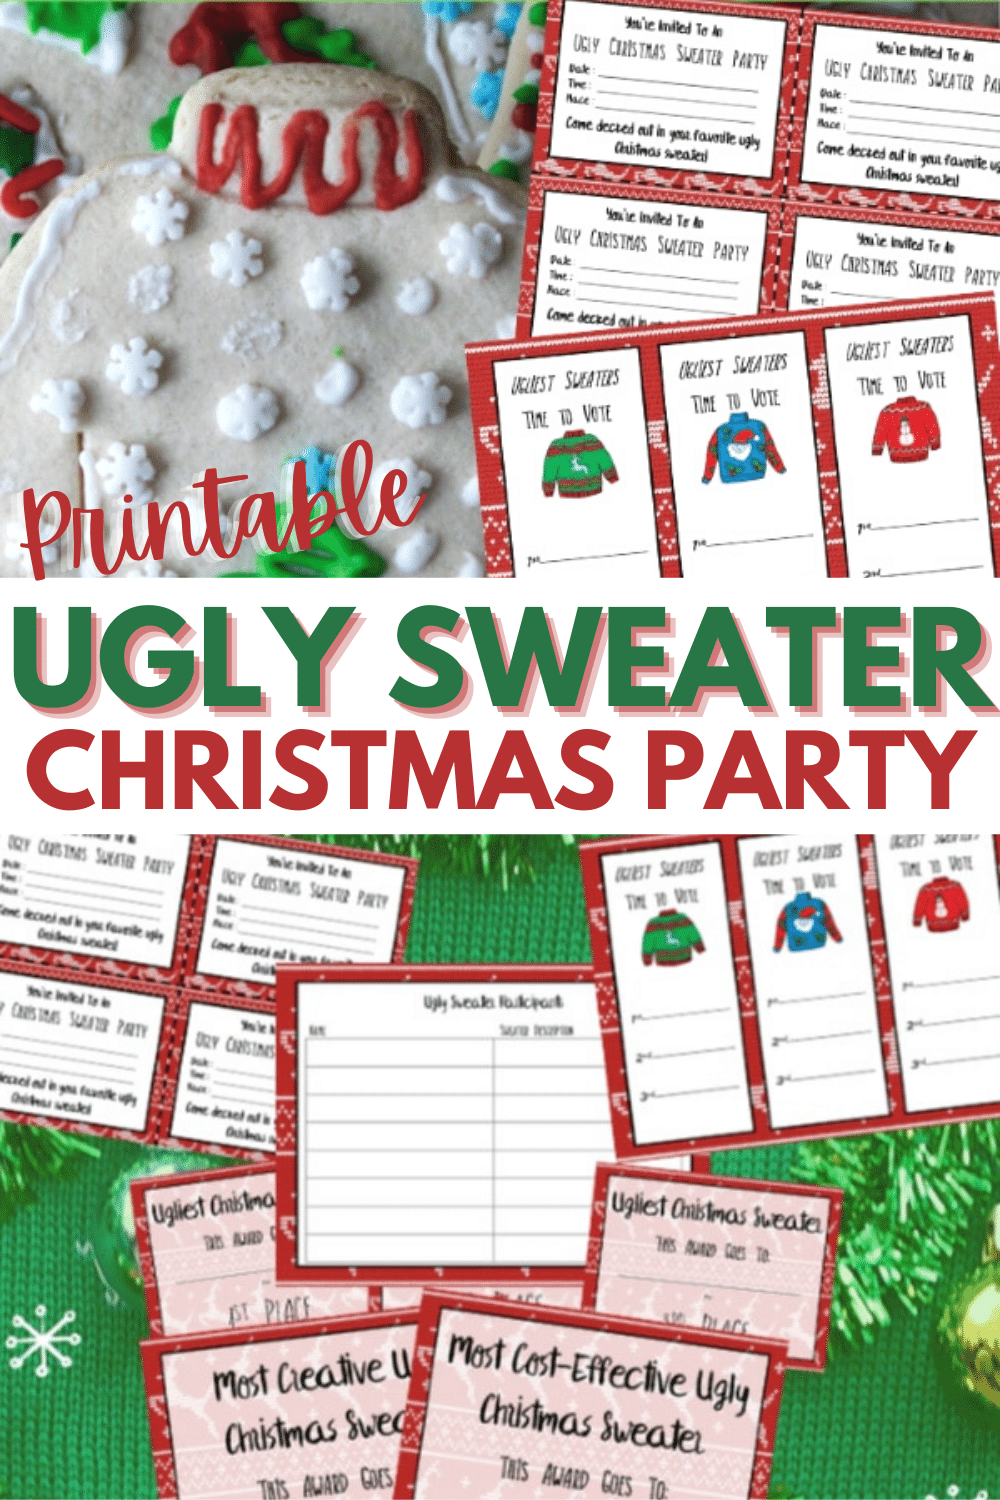 These Ugly Sweater Party Printables will make your Ugly Christmas Sweater Party a blast and easy to throw. Printable invitations, voting cards and awards. #uglysweatercontest #christmas #printables via @wondermomwannab